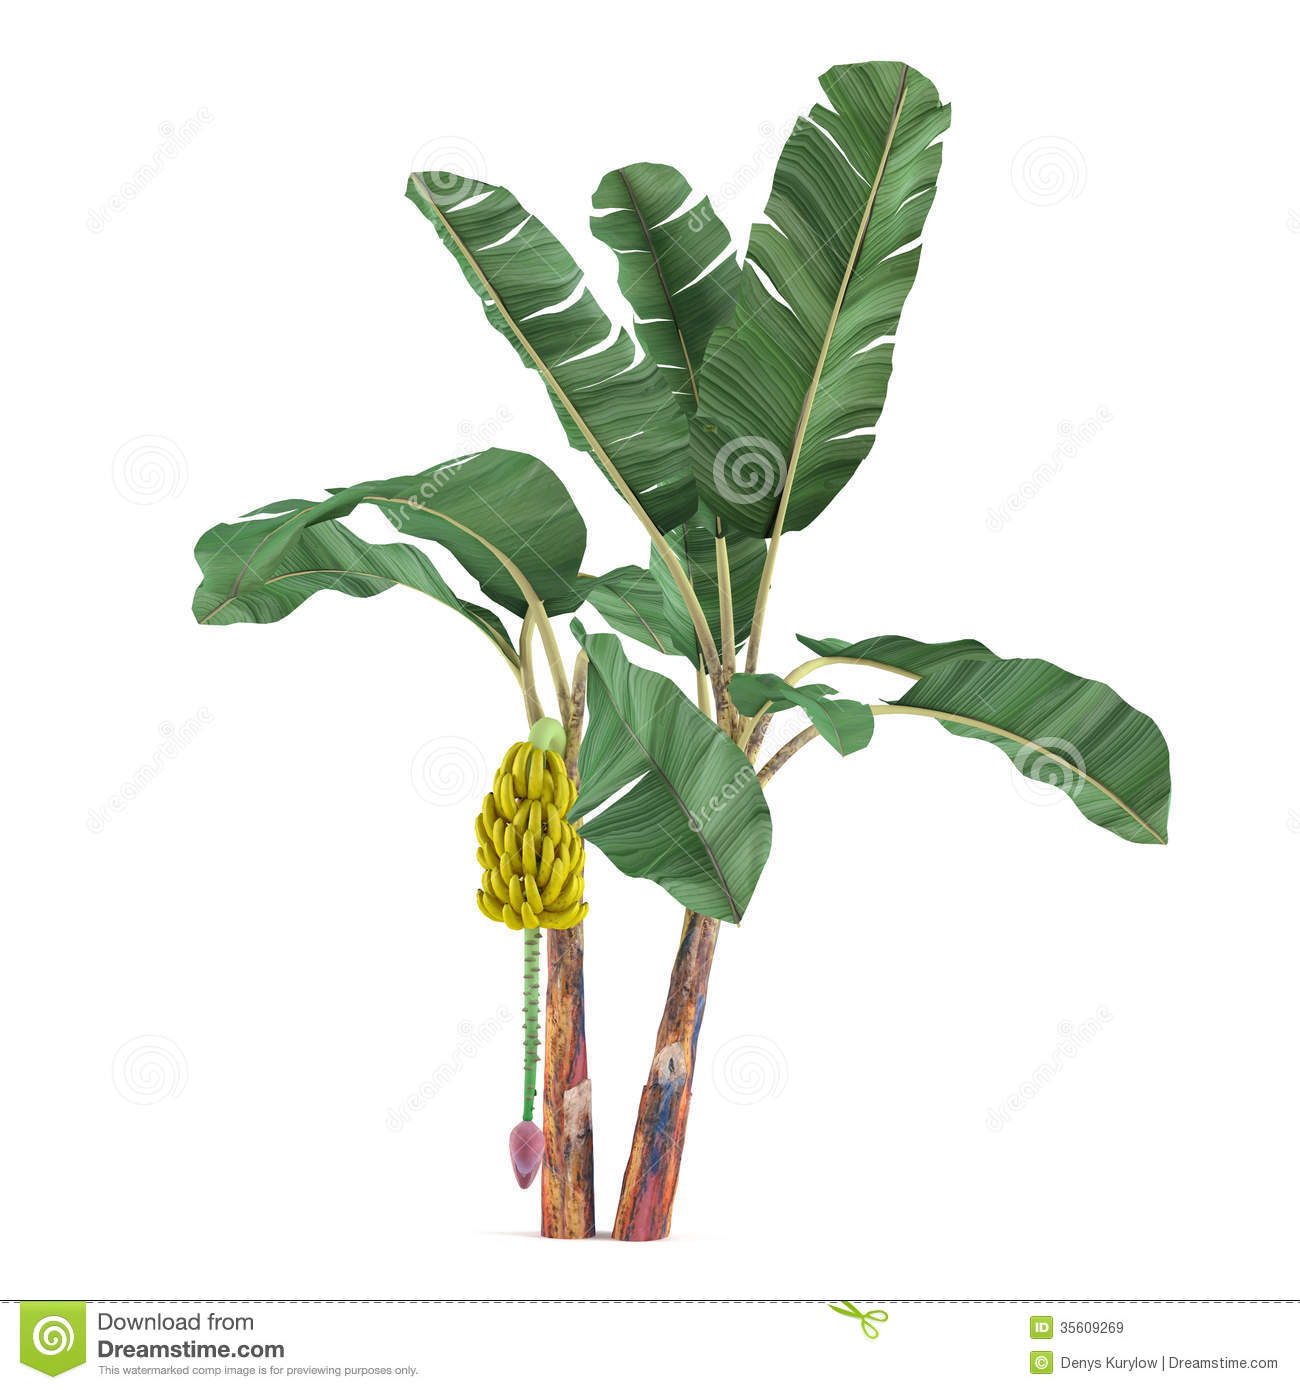 Palm plant tree isolated musa acuminata banana see my other works in